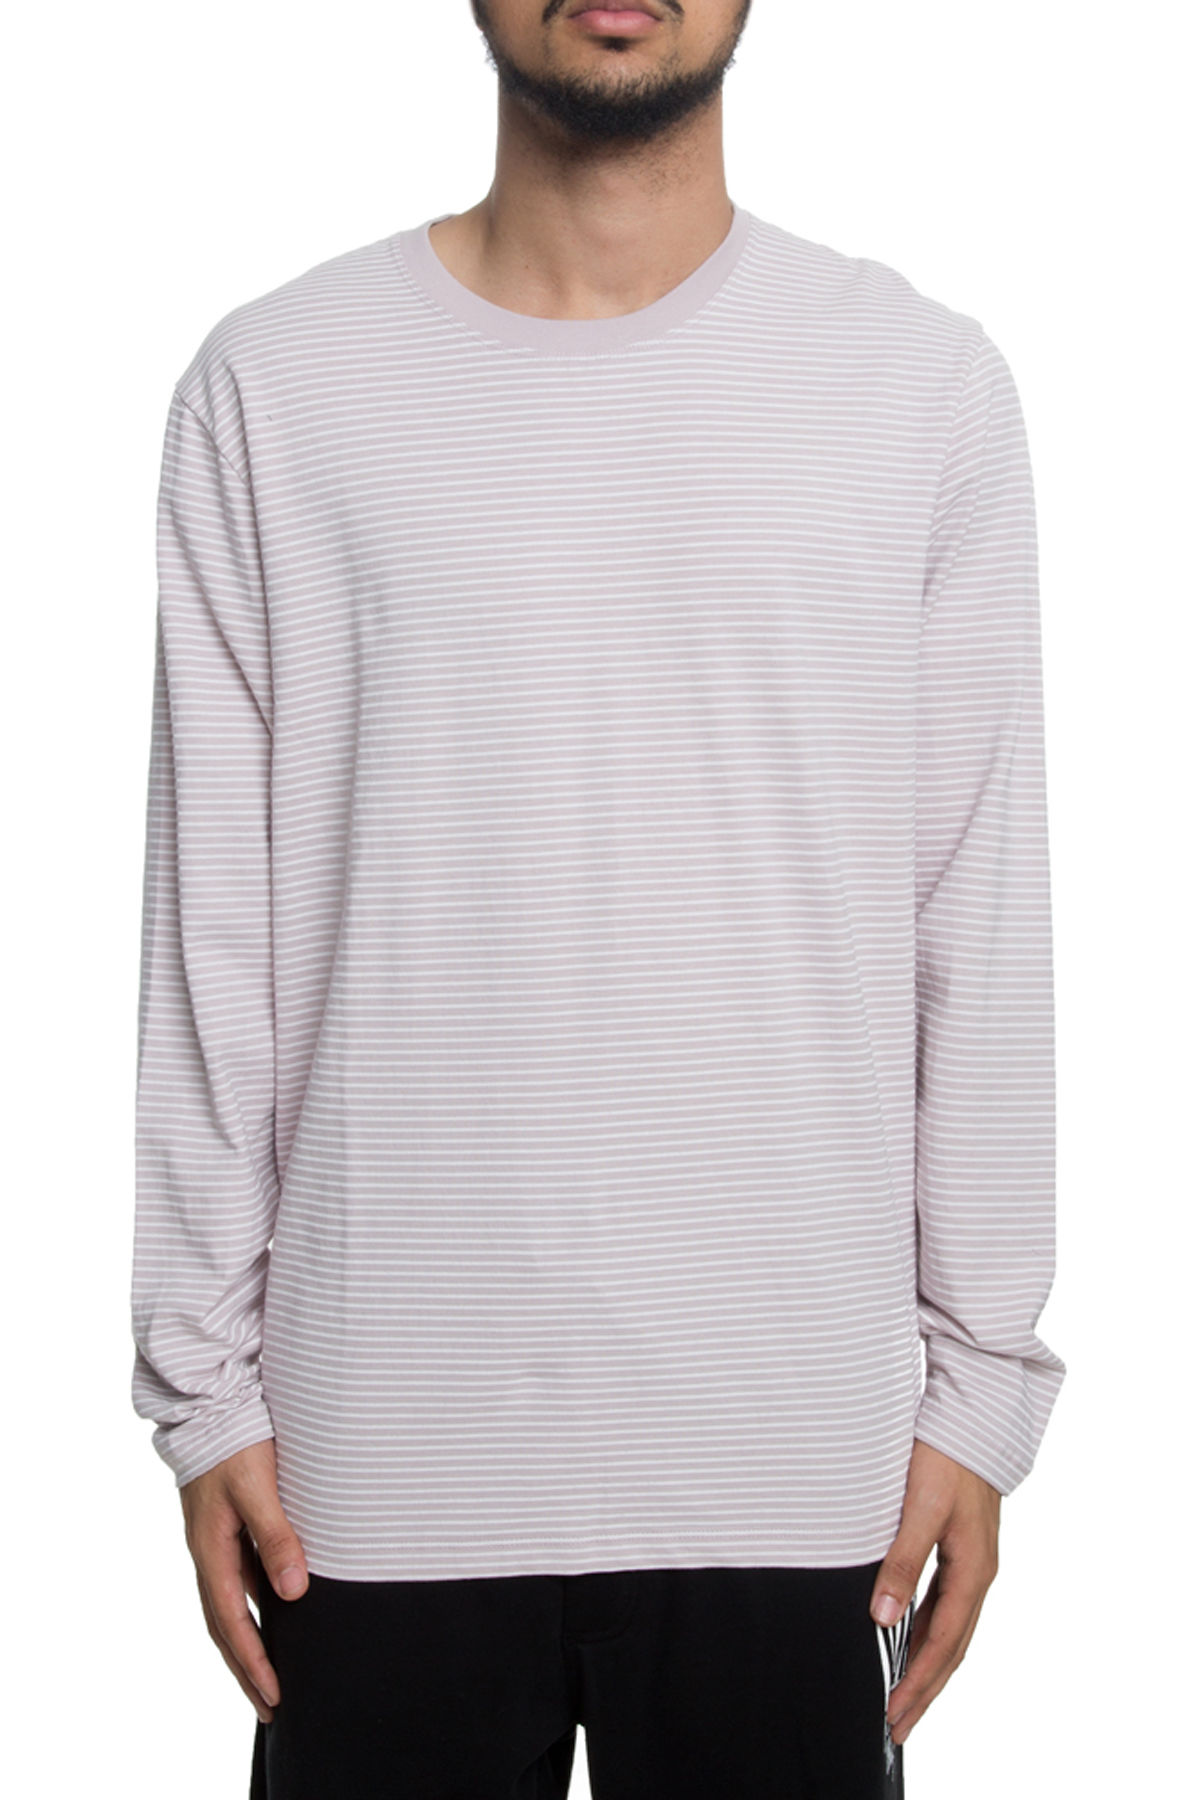 Image of The Engineered Vans Striped Long Sleeve in Violet Ice